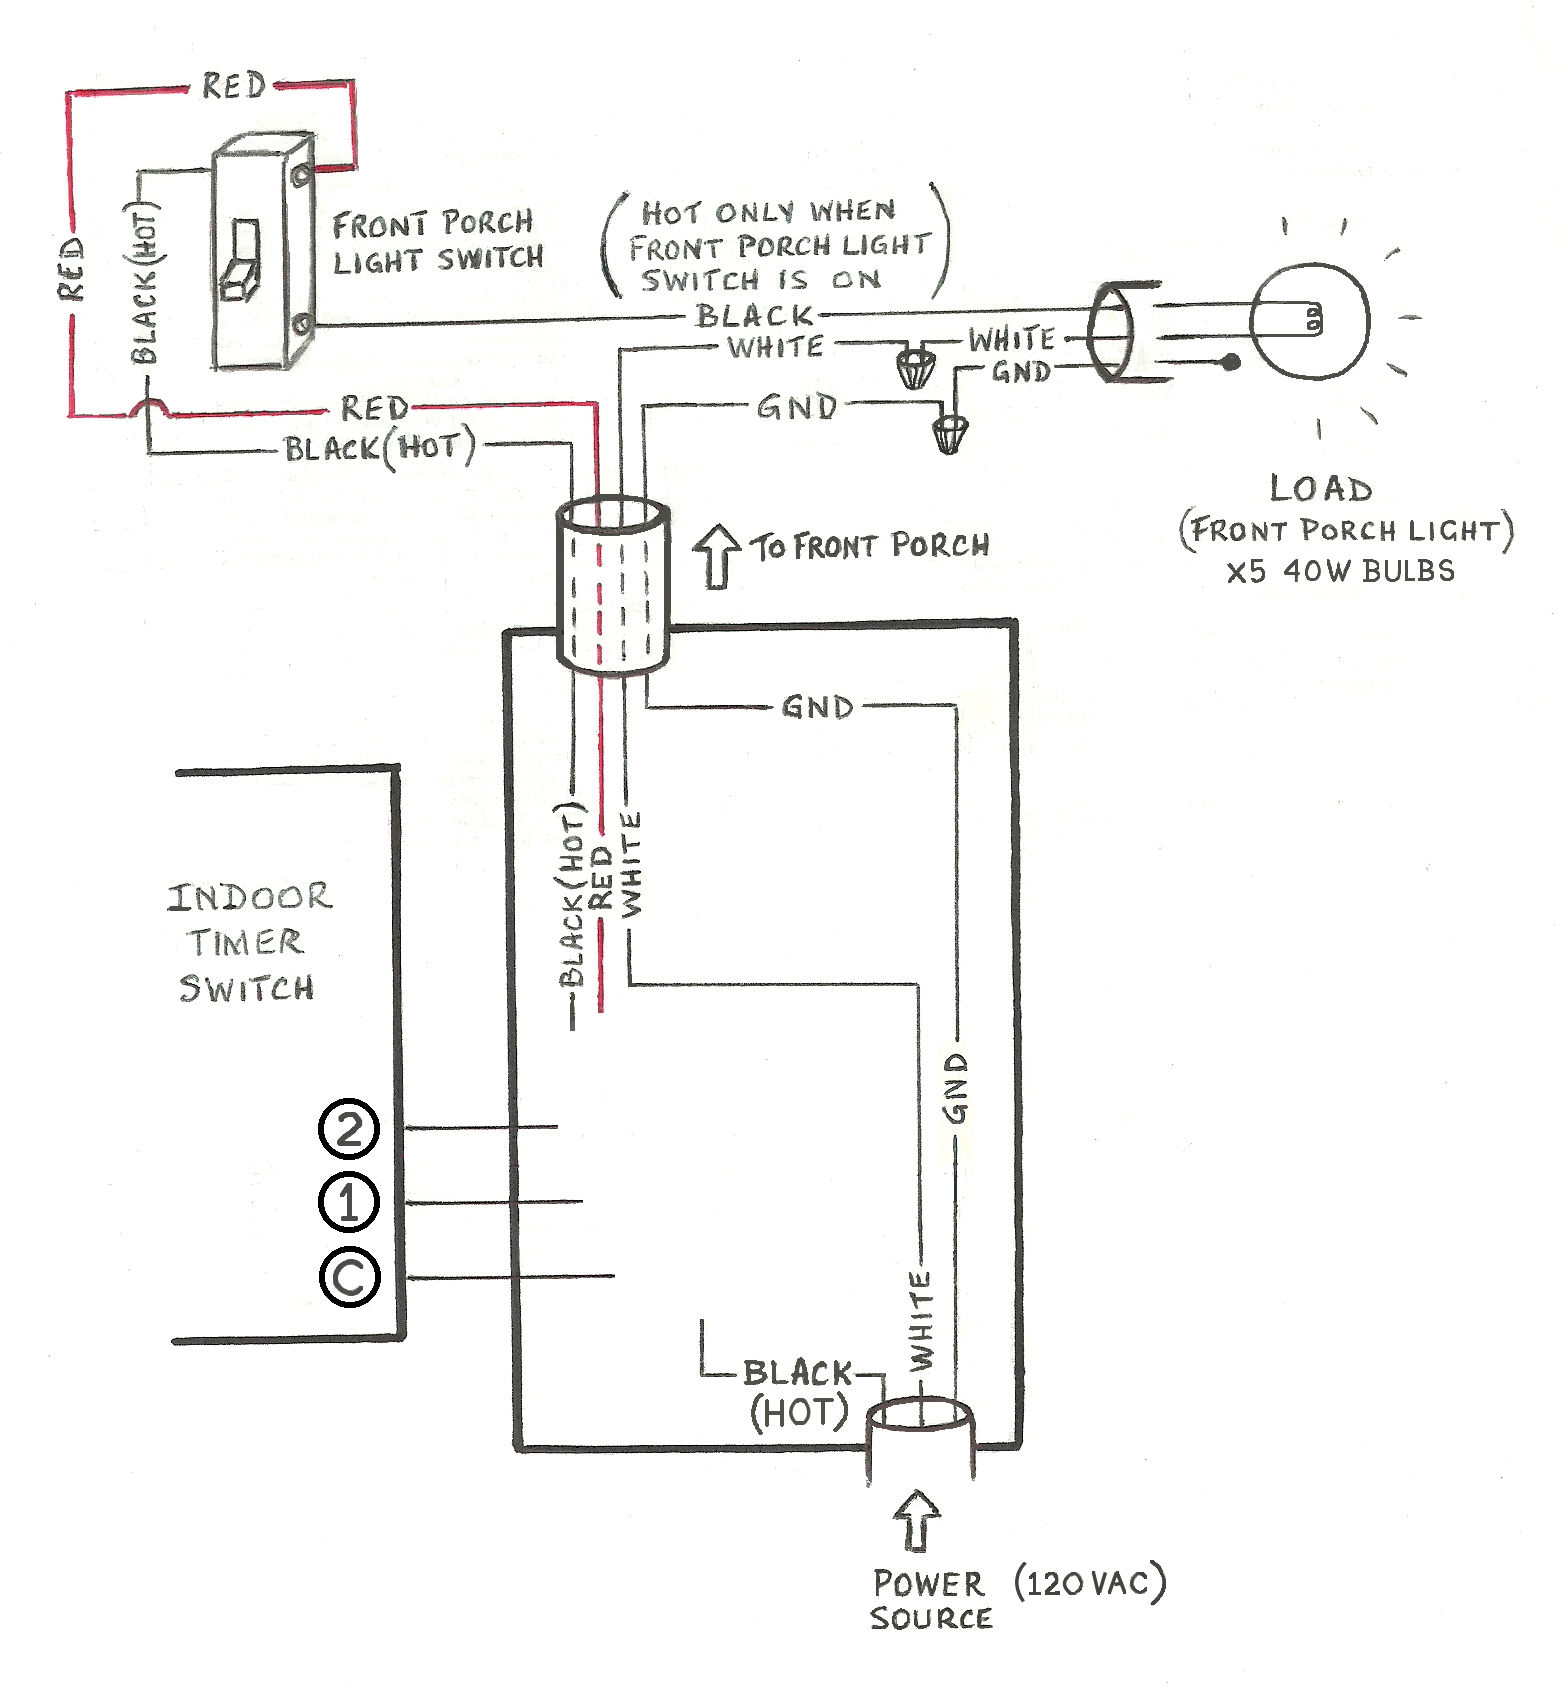 hight resolution of electrical timer switch wiring diagram use wiring diagram zone heating wiring diagram also basic light switch diagram on winch